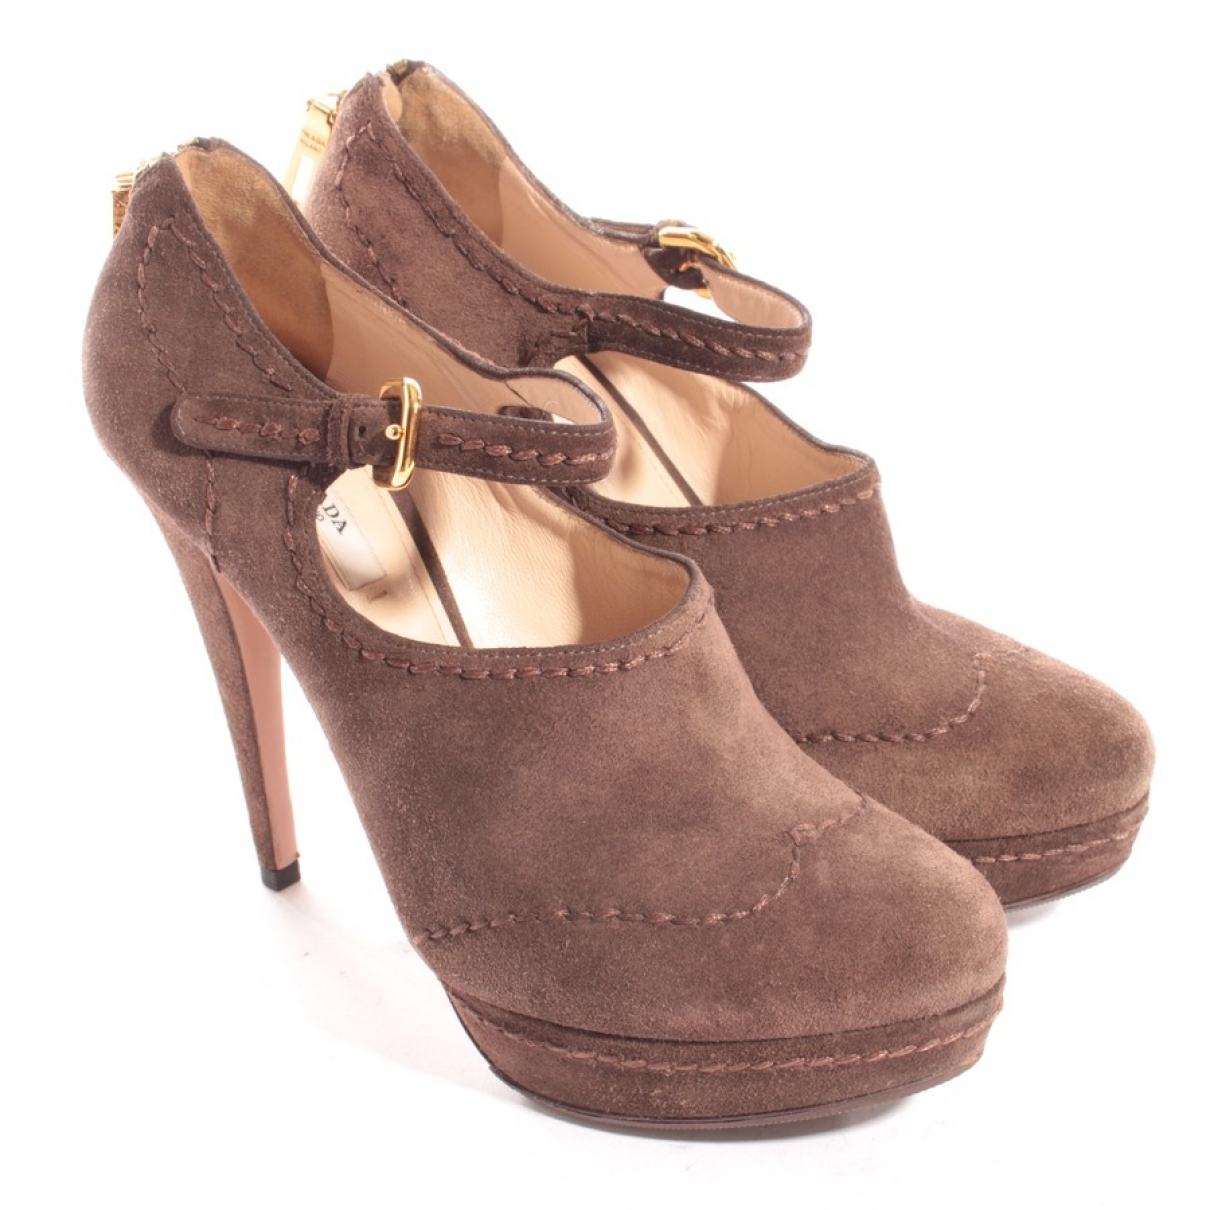 Prada \N Brown Leather Heels for Women 39.5 EU